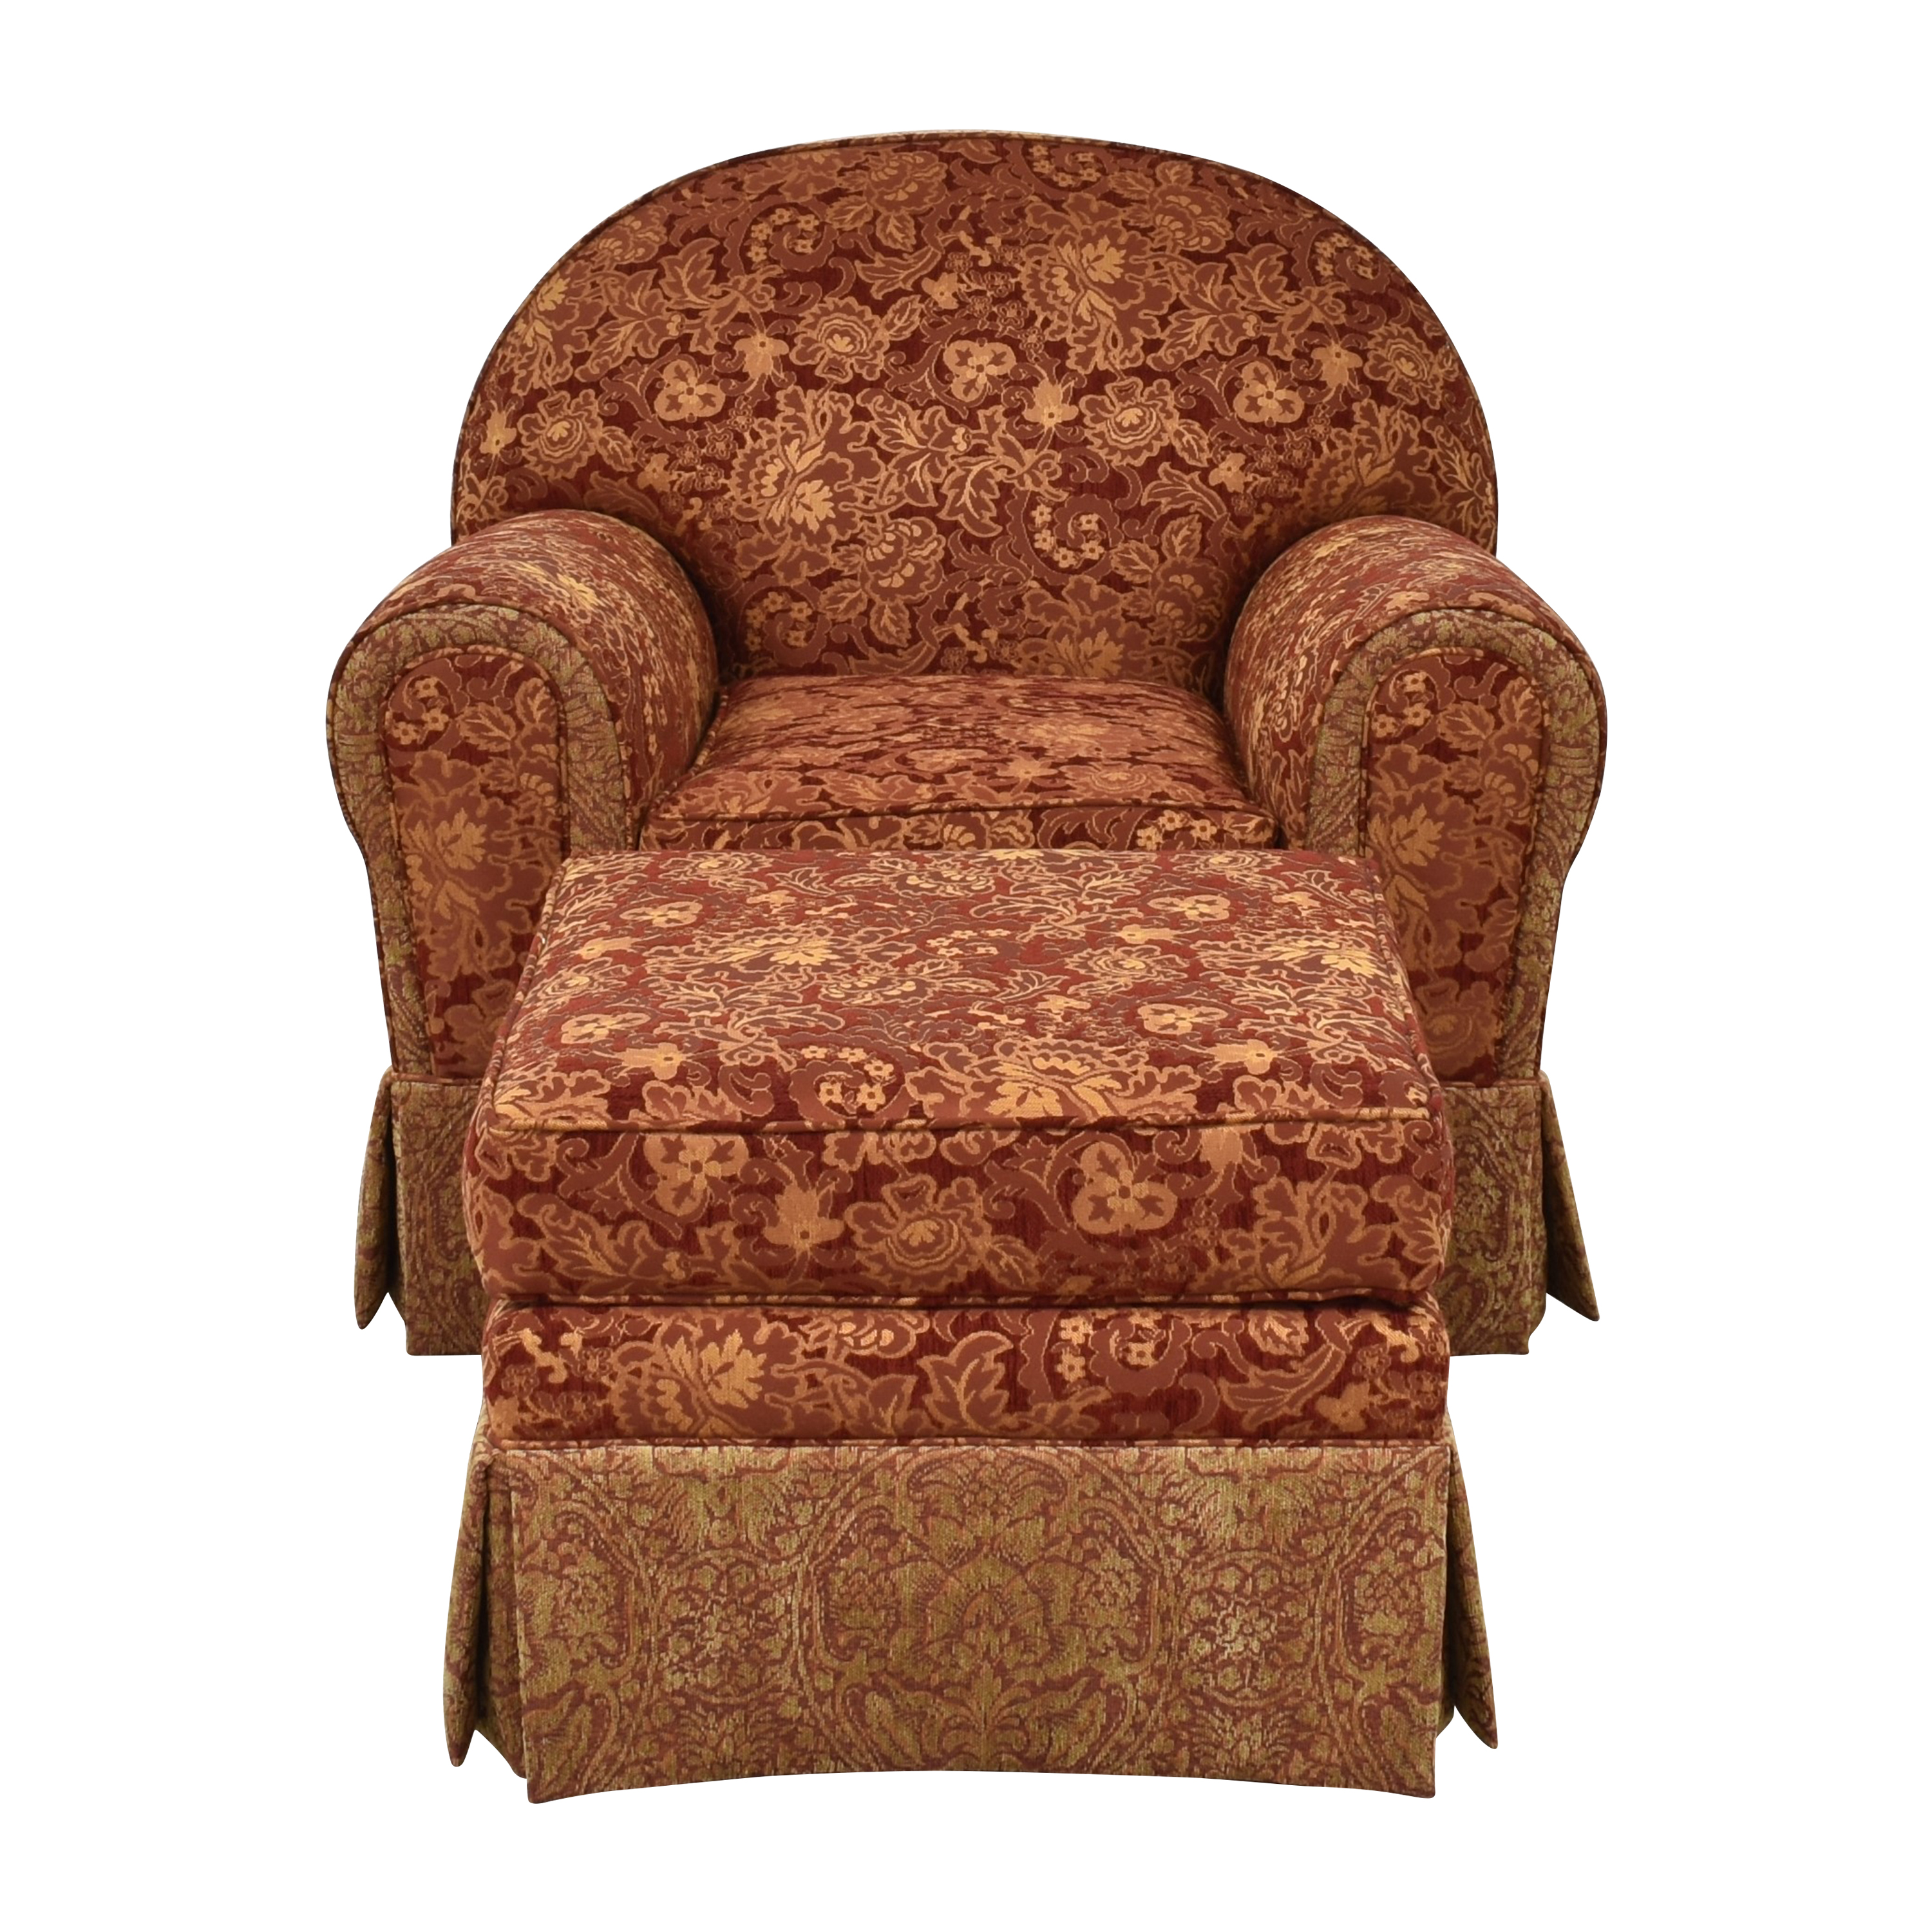 Skirted Club Chair and Ottoman second hand